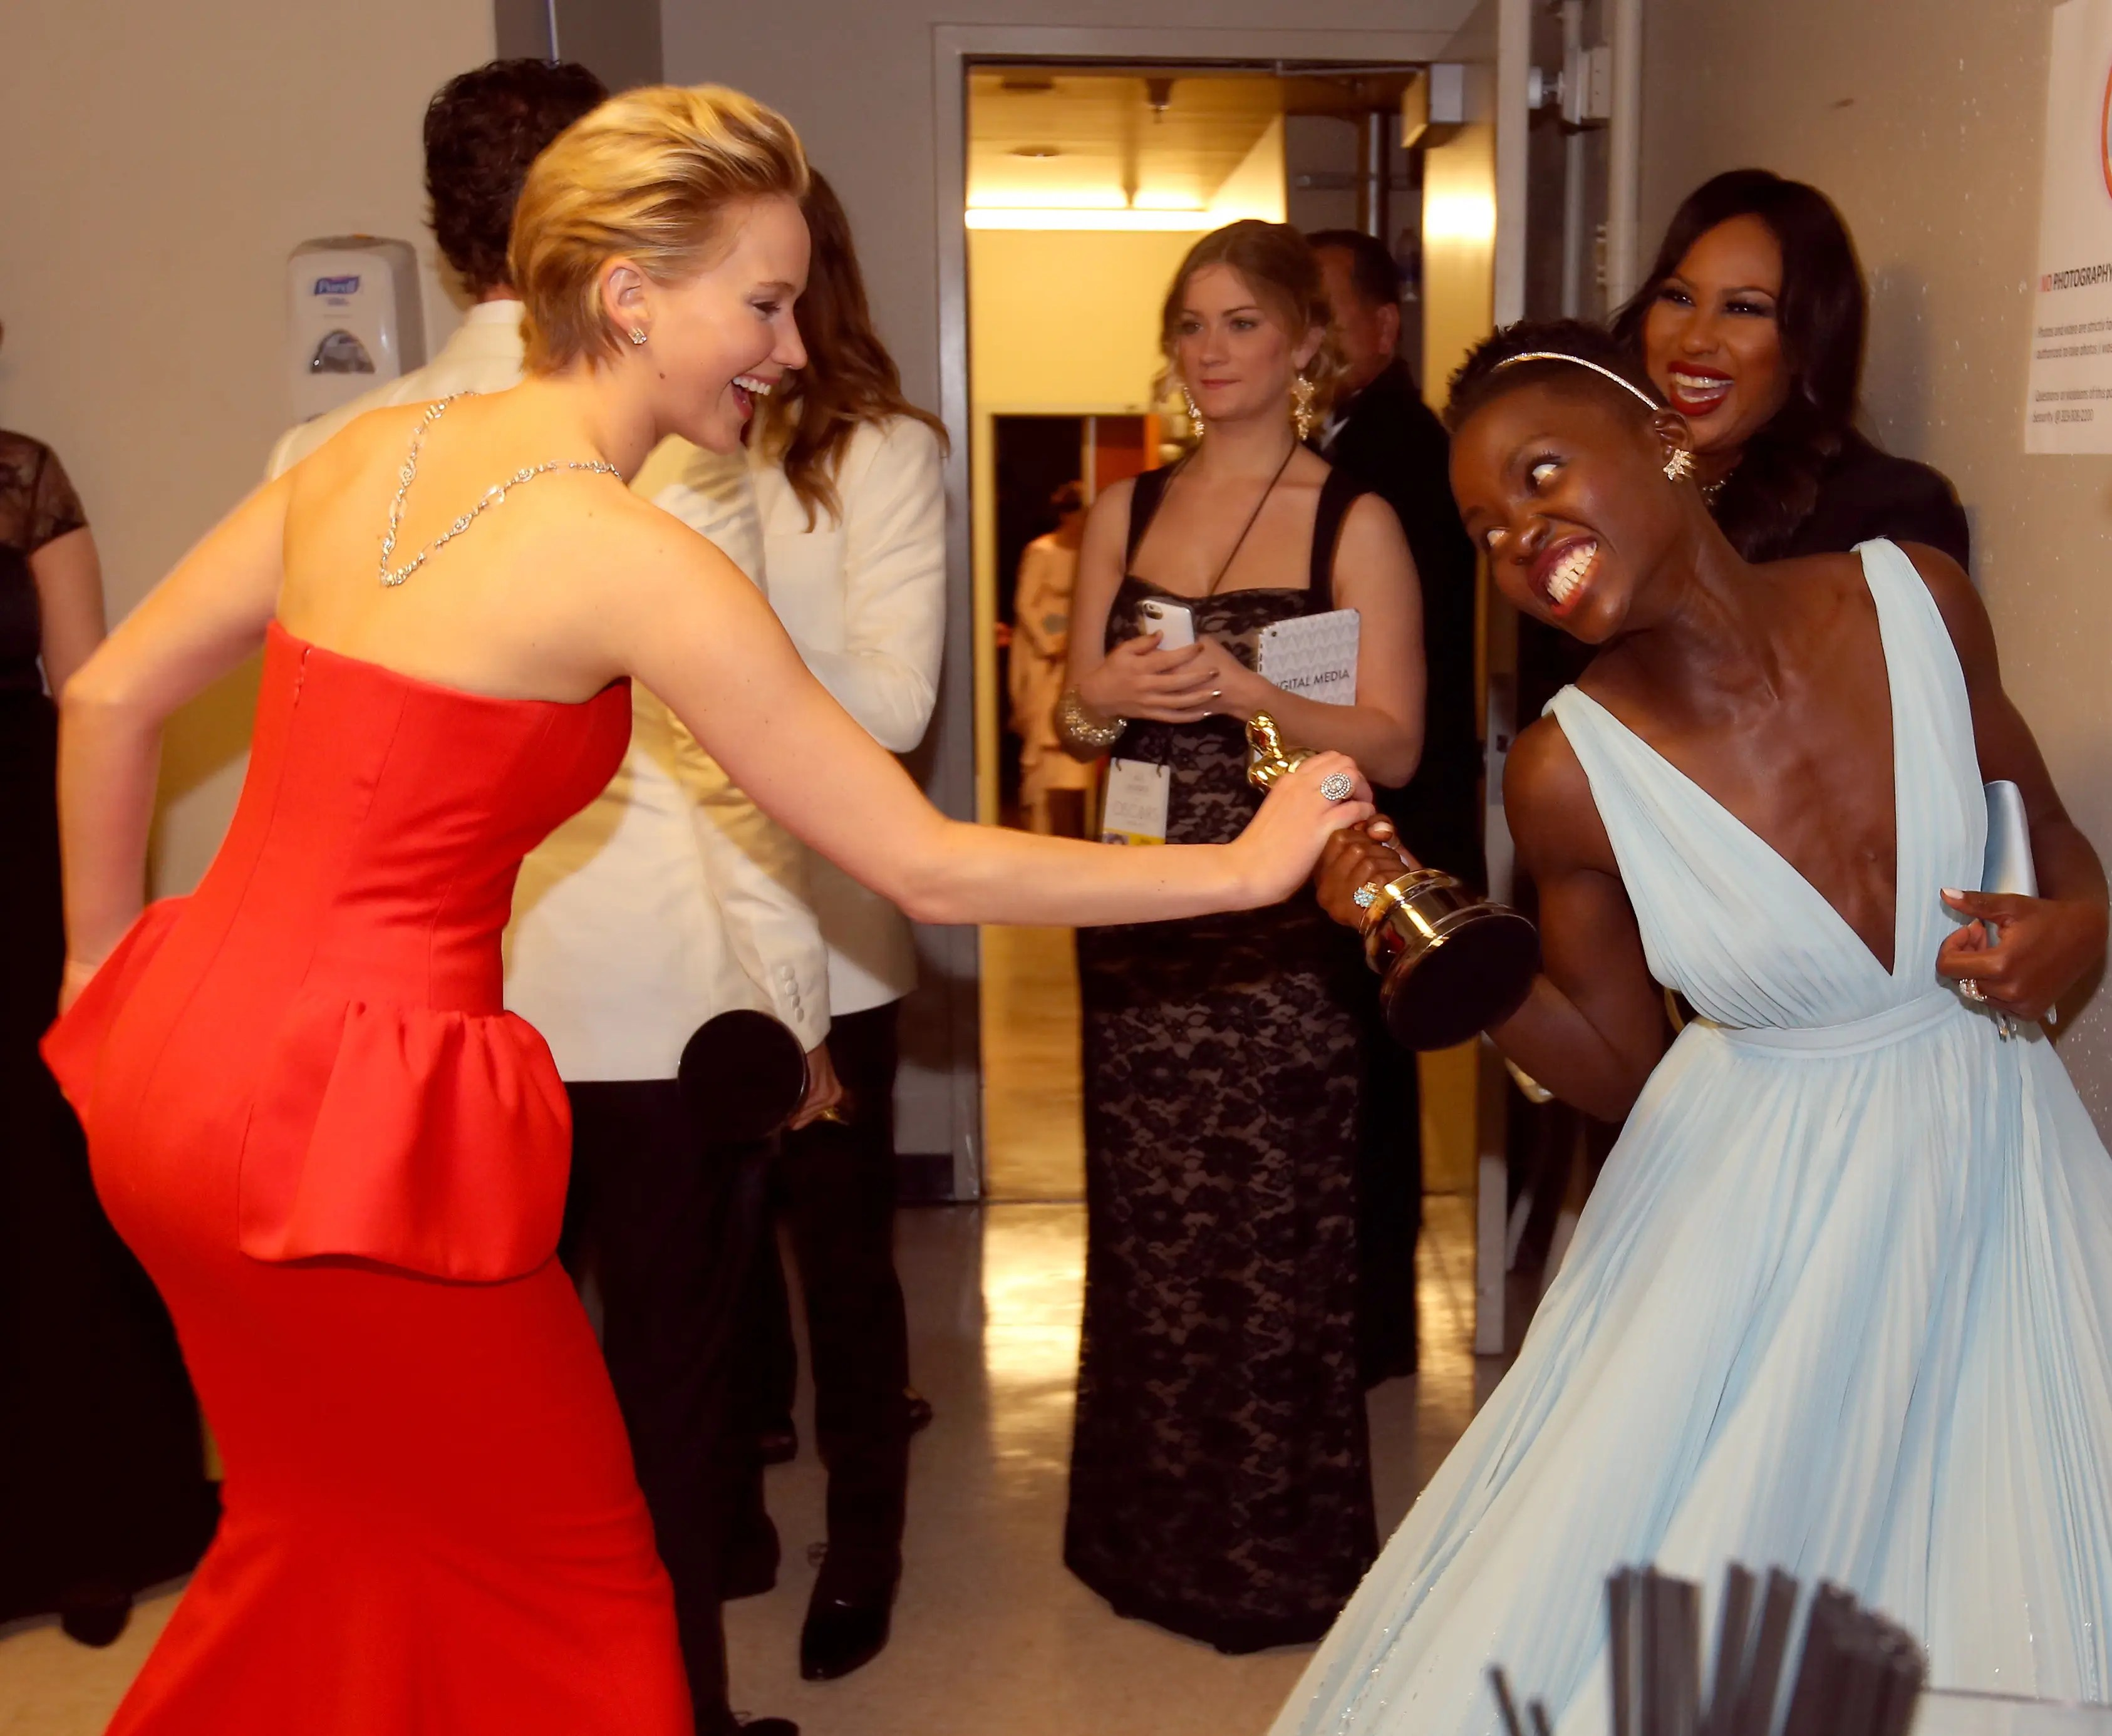 Jennifer Lawrence and Oscar winner Lupita Nyong'o playfully fought over the Best Supporting Actress Award backstage.